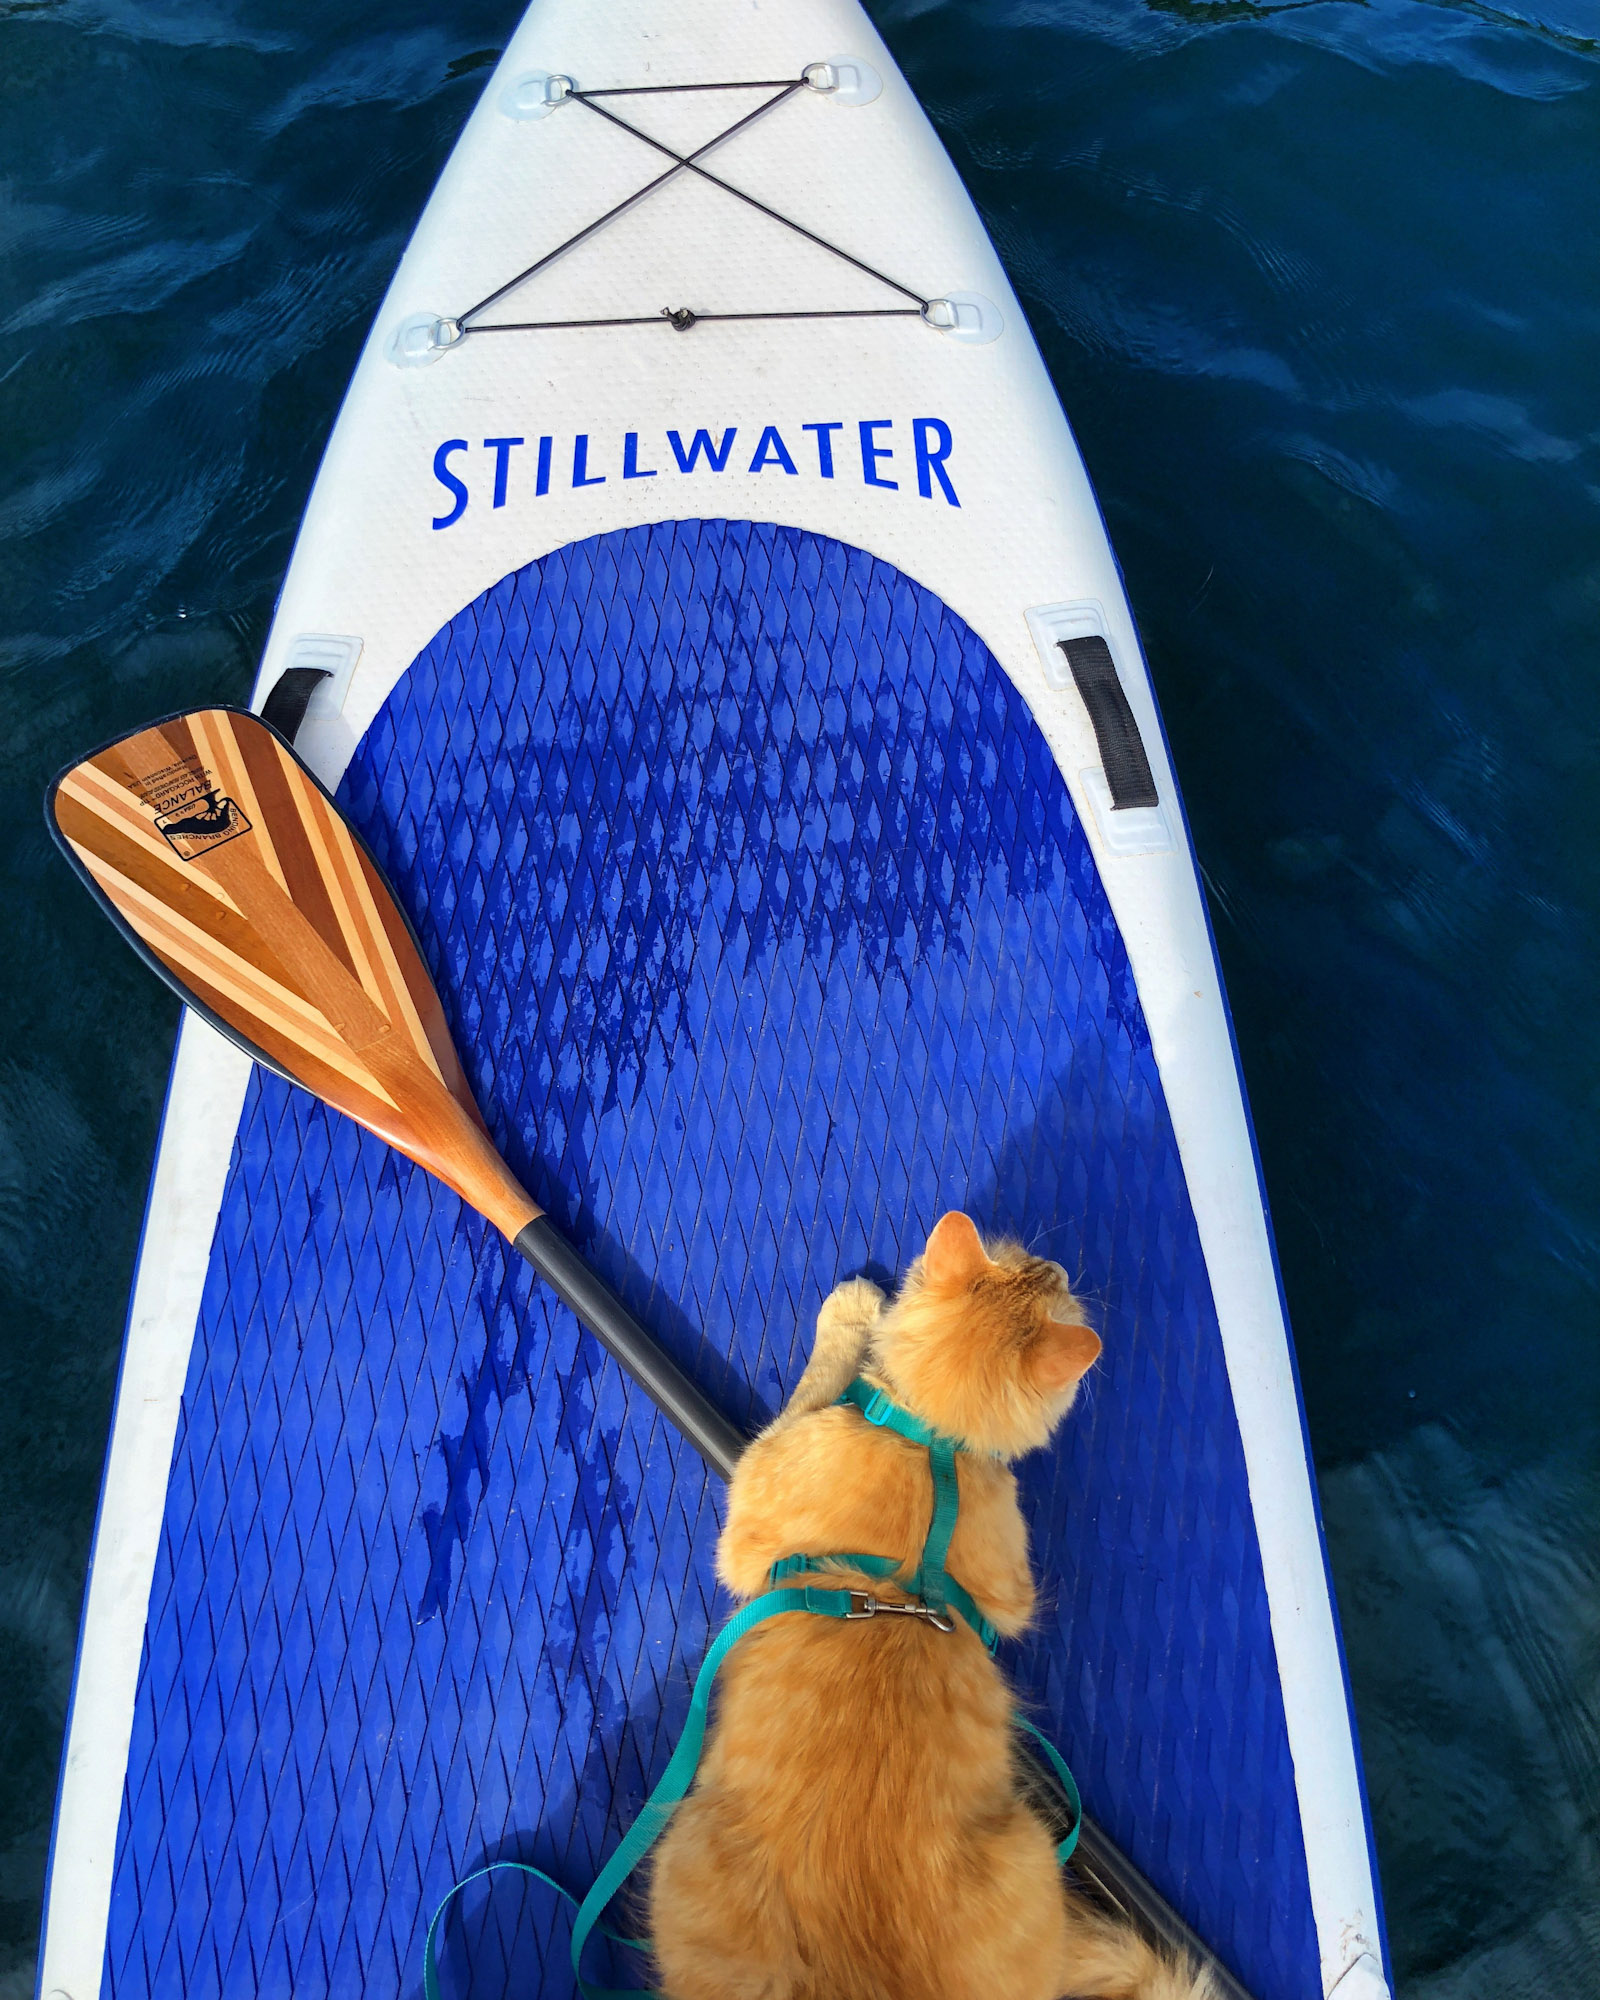 orange tabby cat on paddleboard